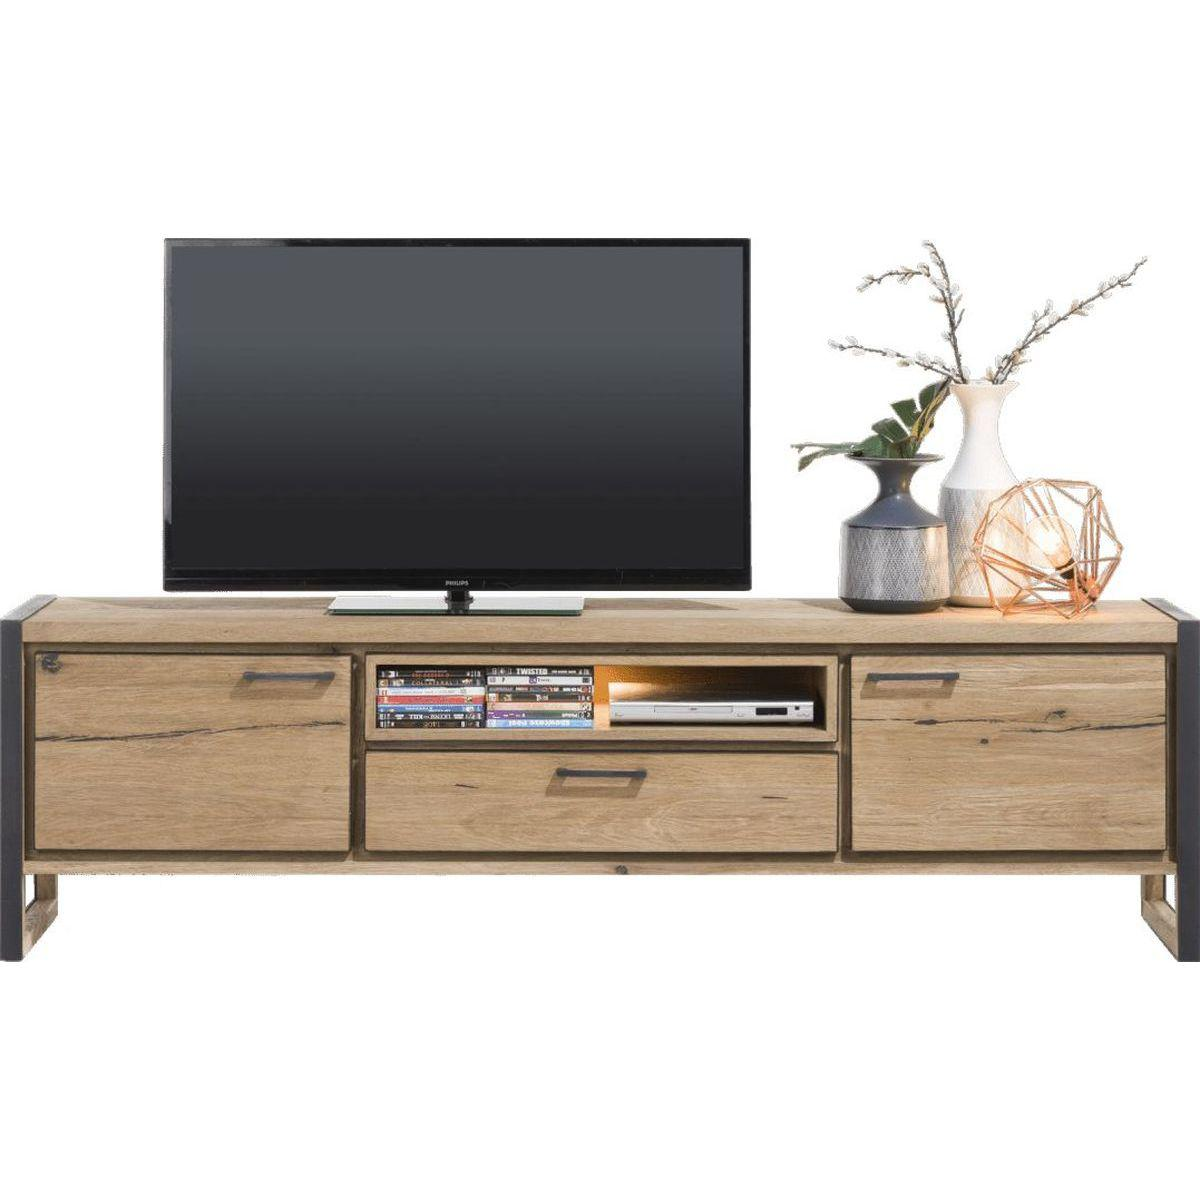 Meuble TV METALO HetH 210cm